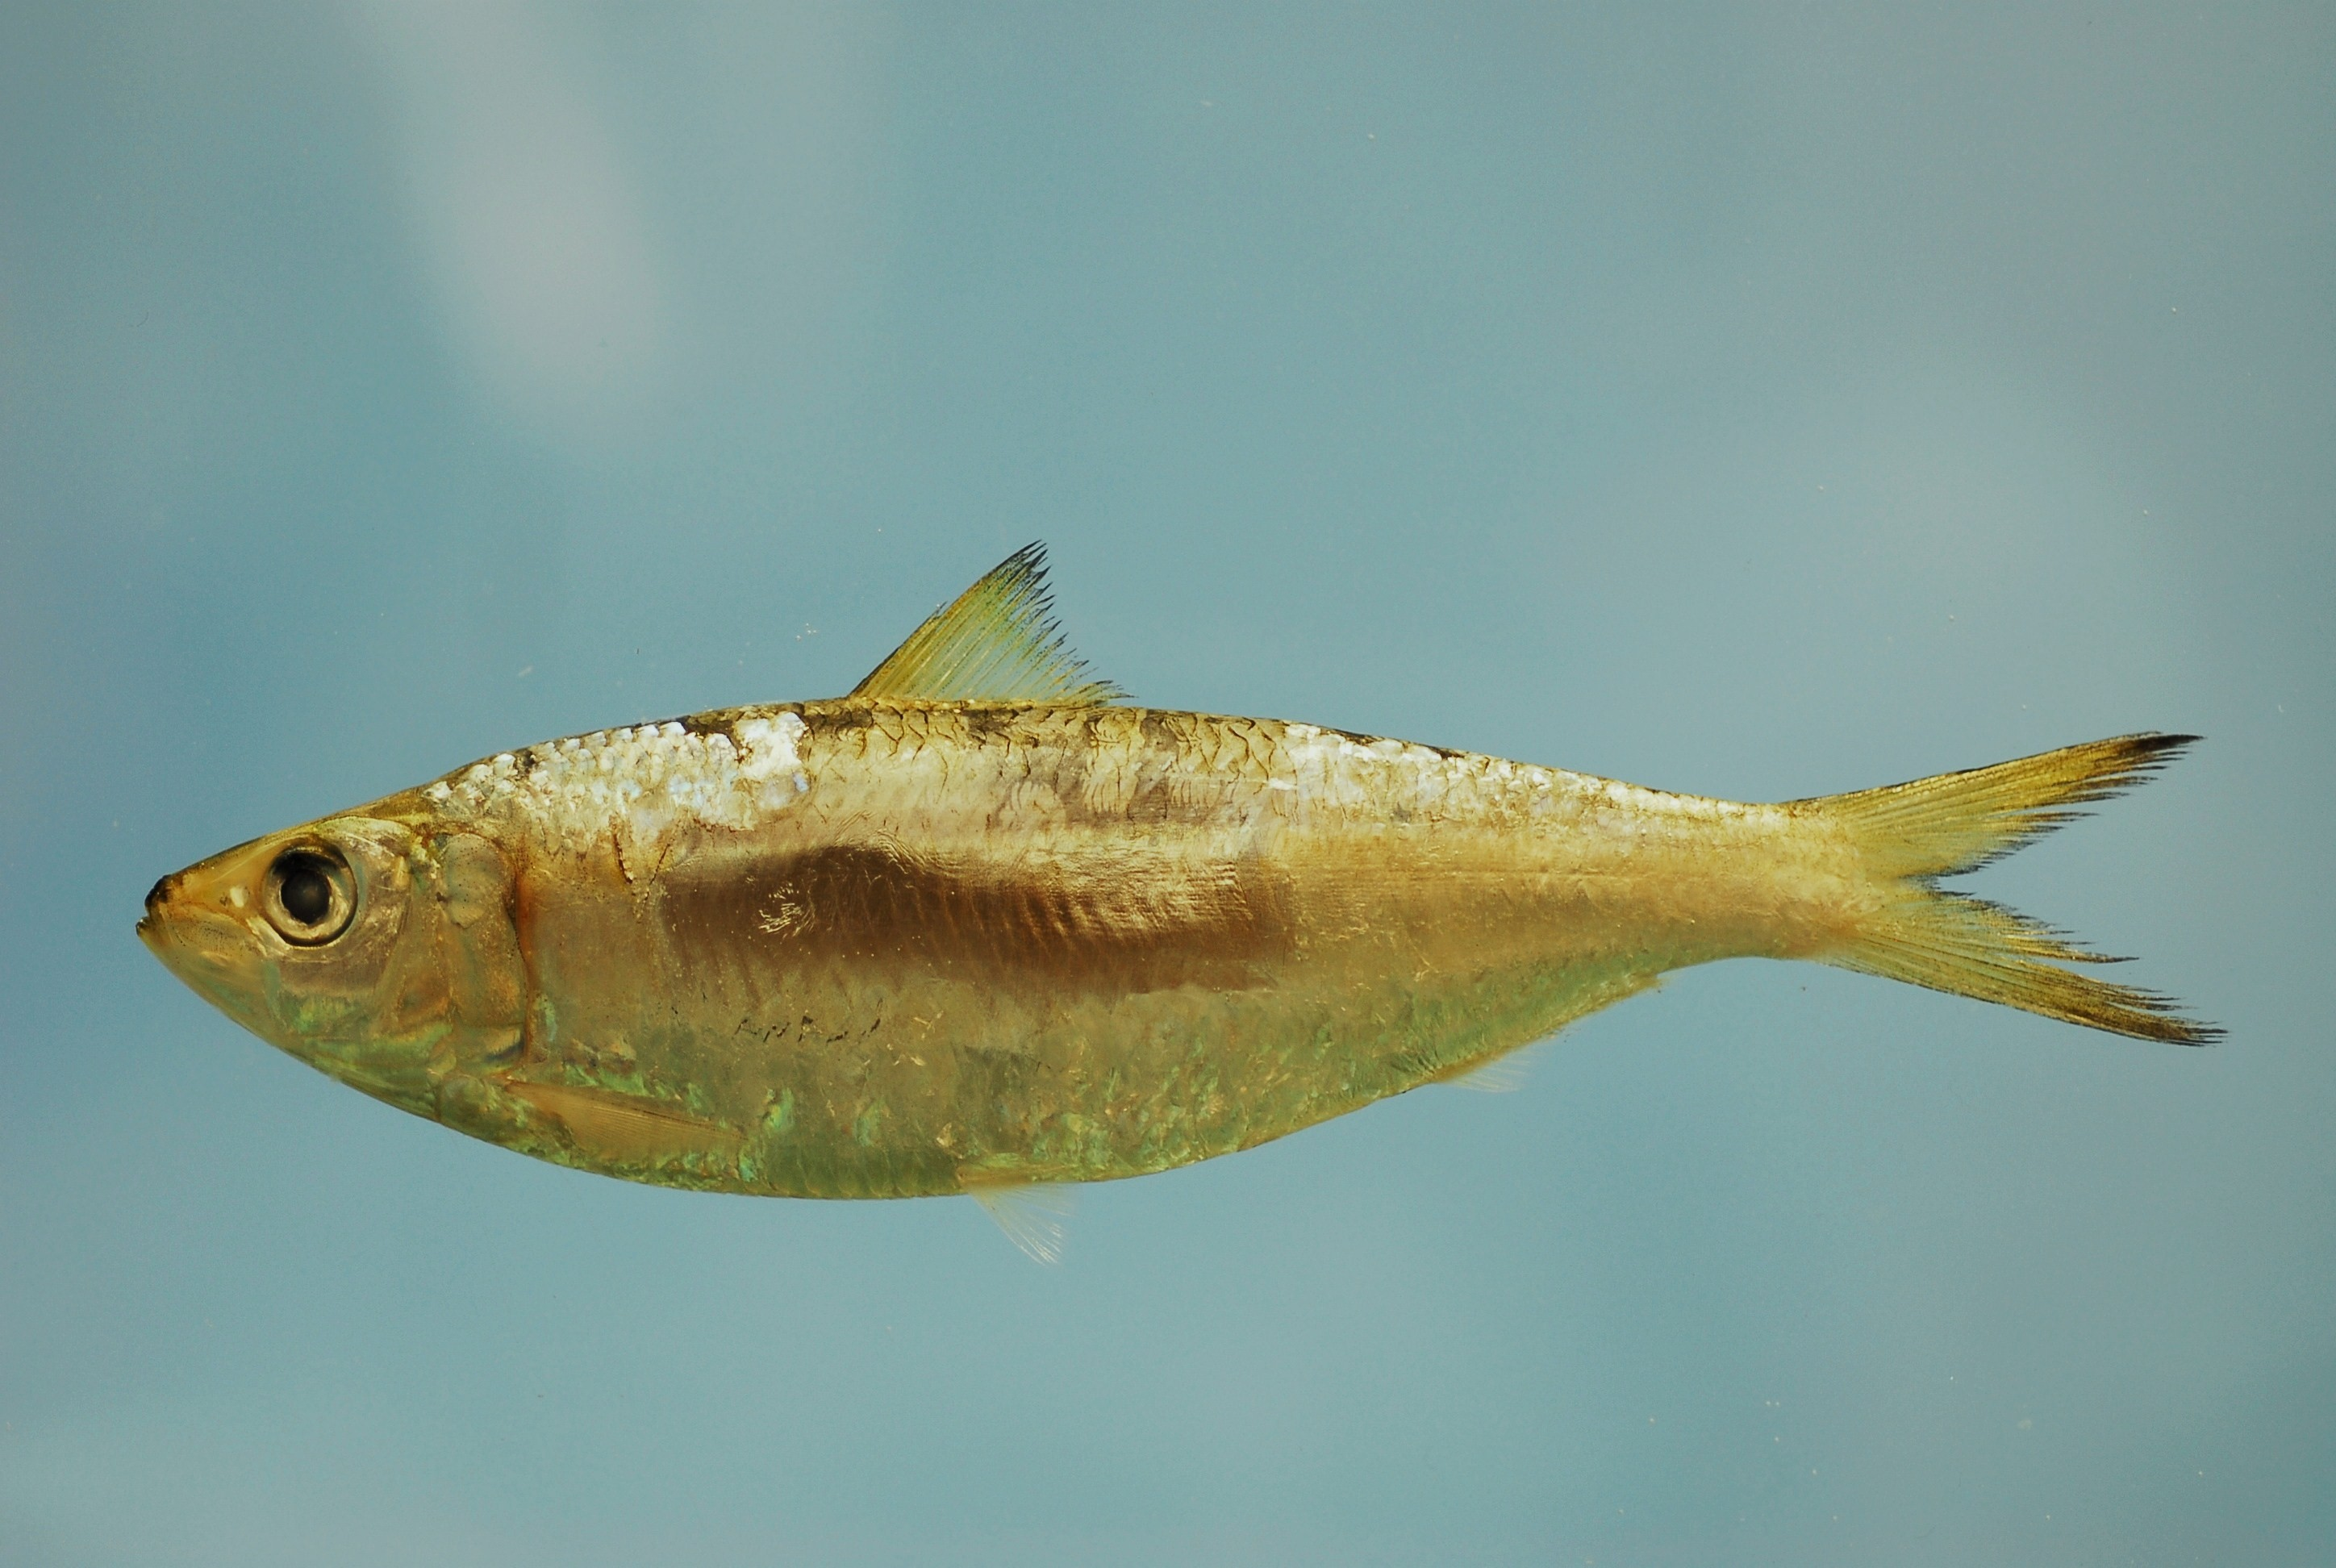 https://upload.wikimedia.org/wikipedia/commons/1/12/Sardinella_aurita.jpg